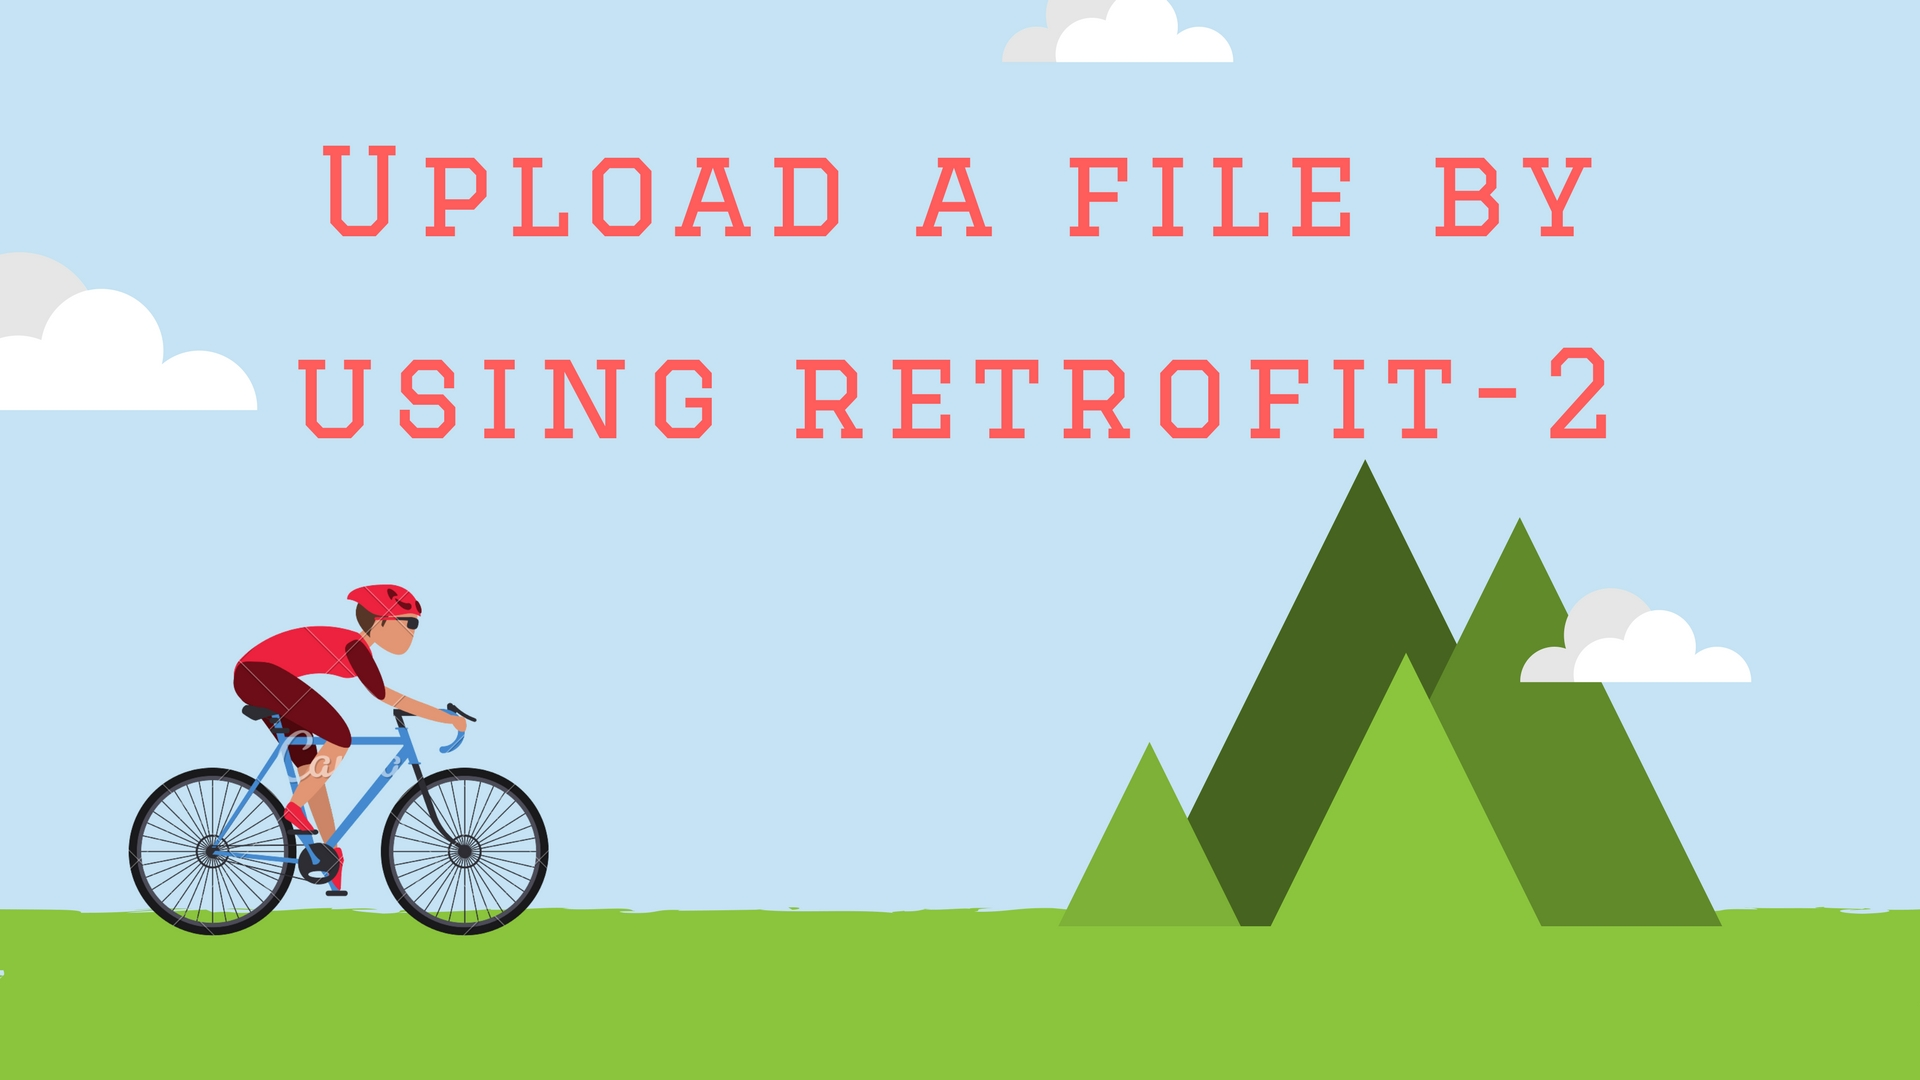 Upload a file by using retrofit in android | MoboLogic+